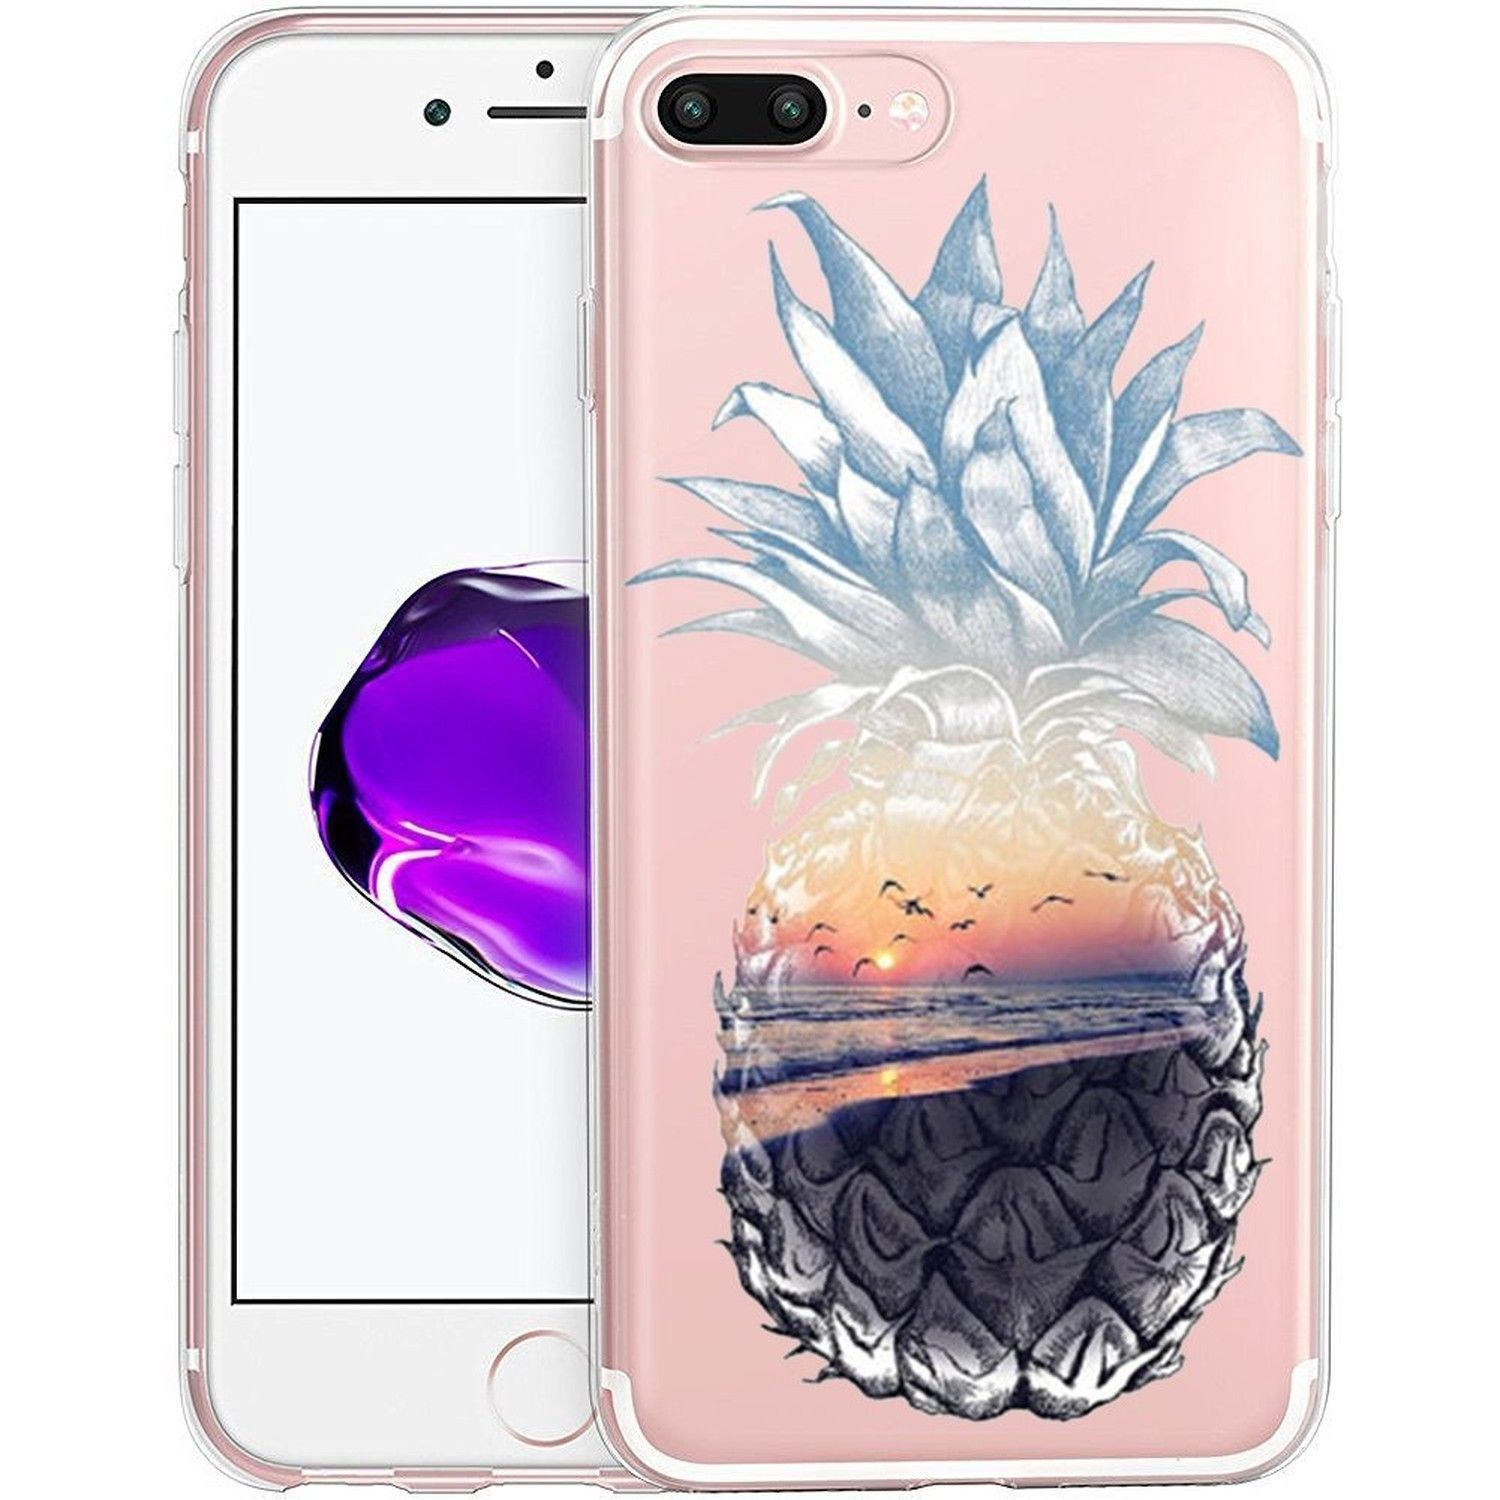 TROPICAL ISLAND SUNSET New Cute Pineapple Phone Cover Case